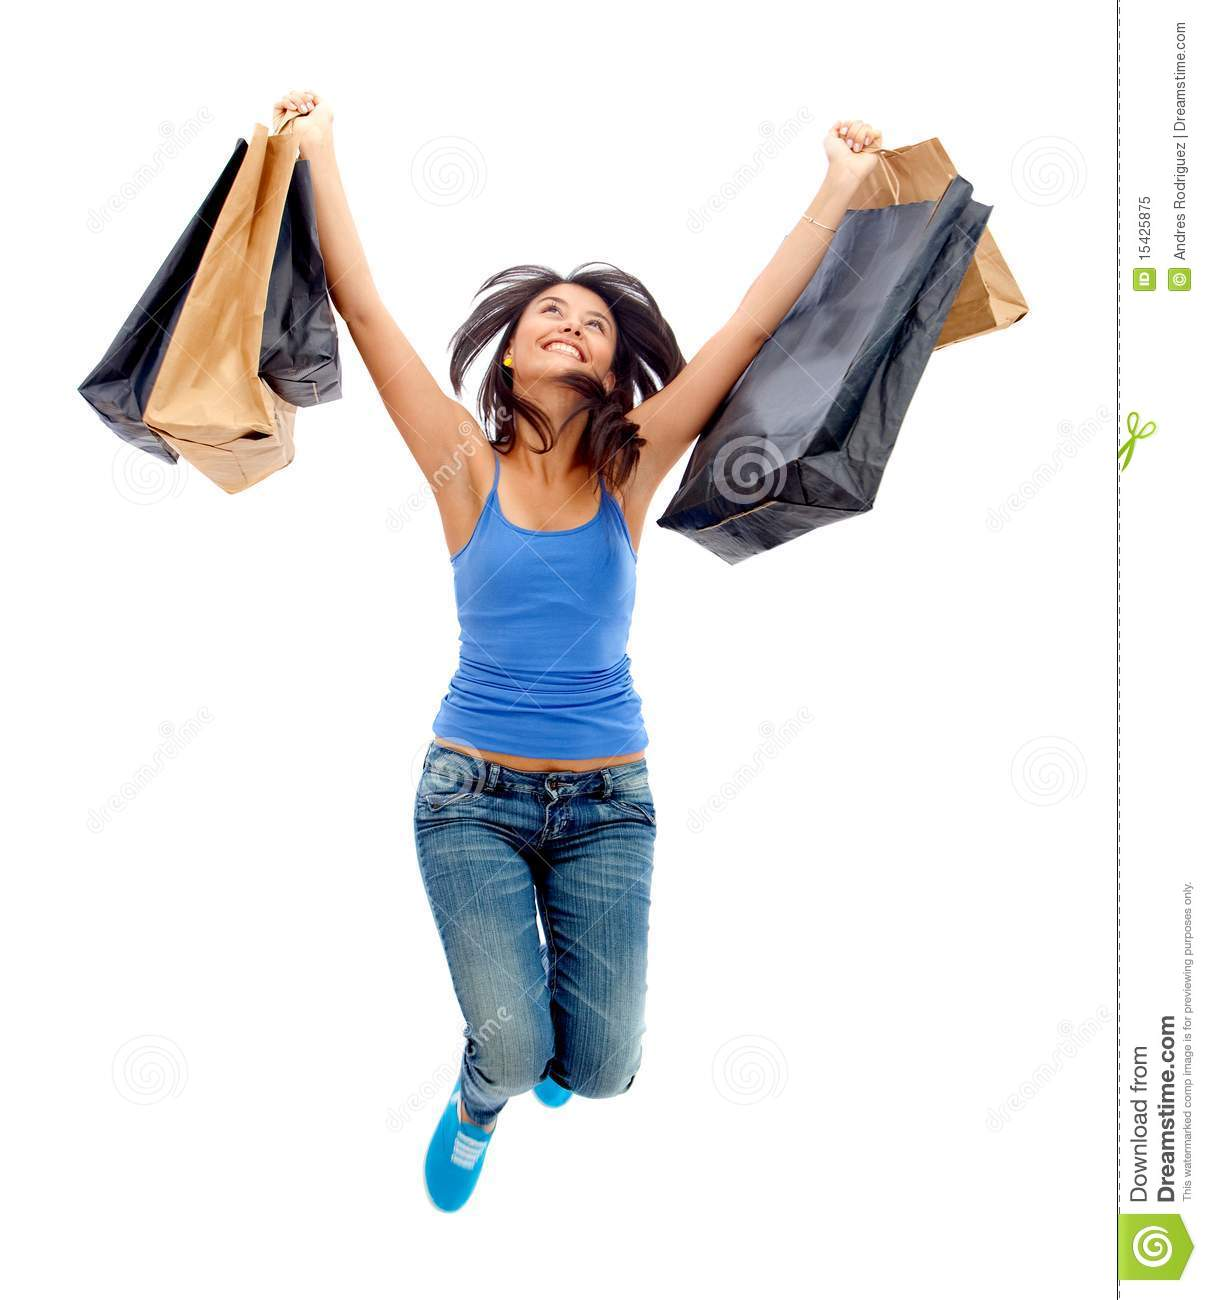 Related to Happy girls Stock Photo Images. 1,733,720 Happy girls